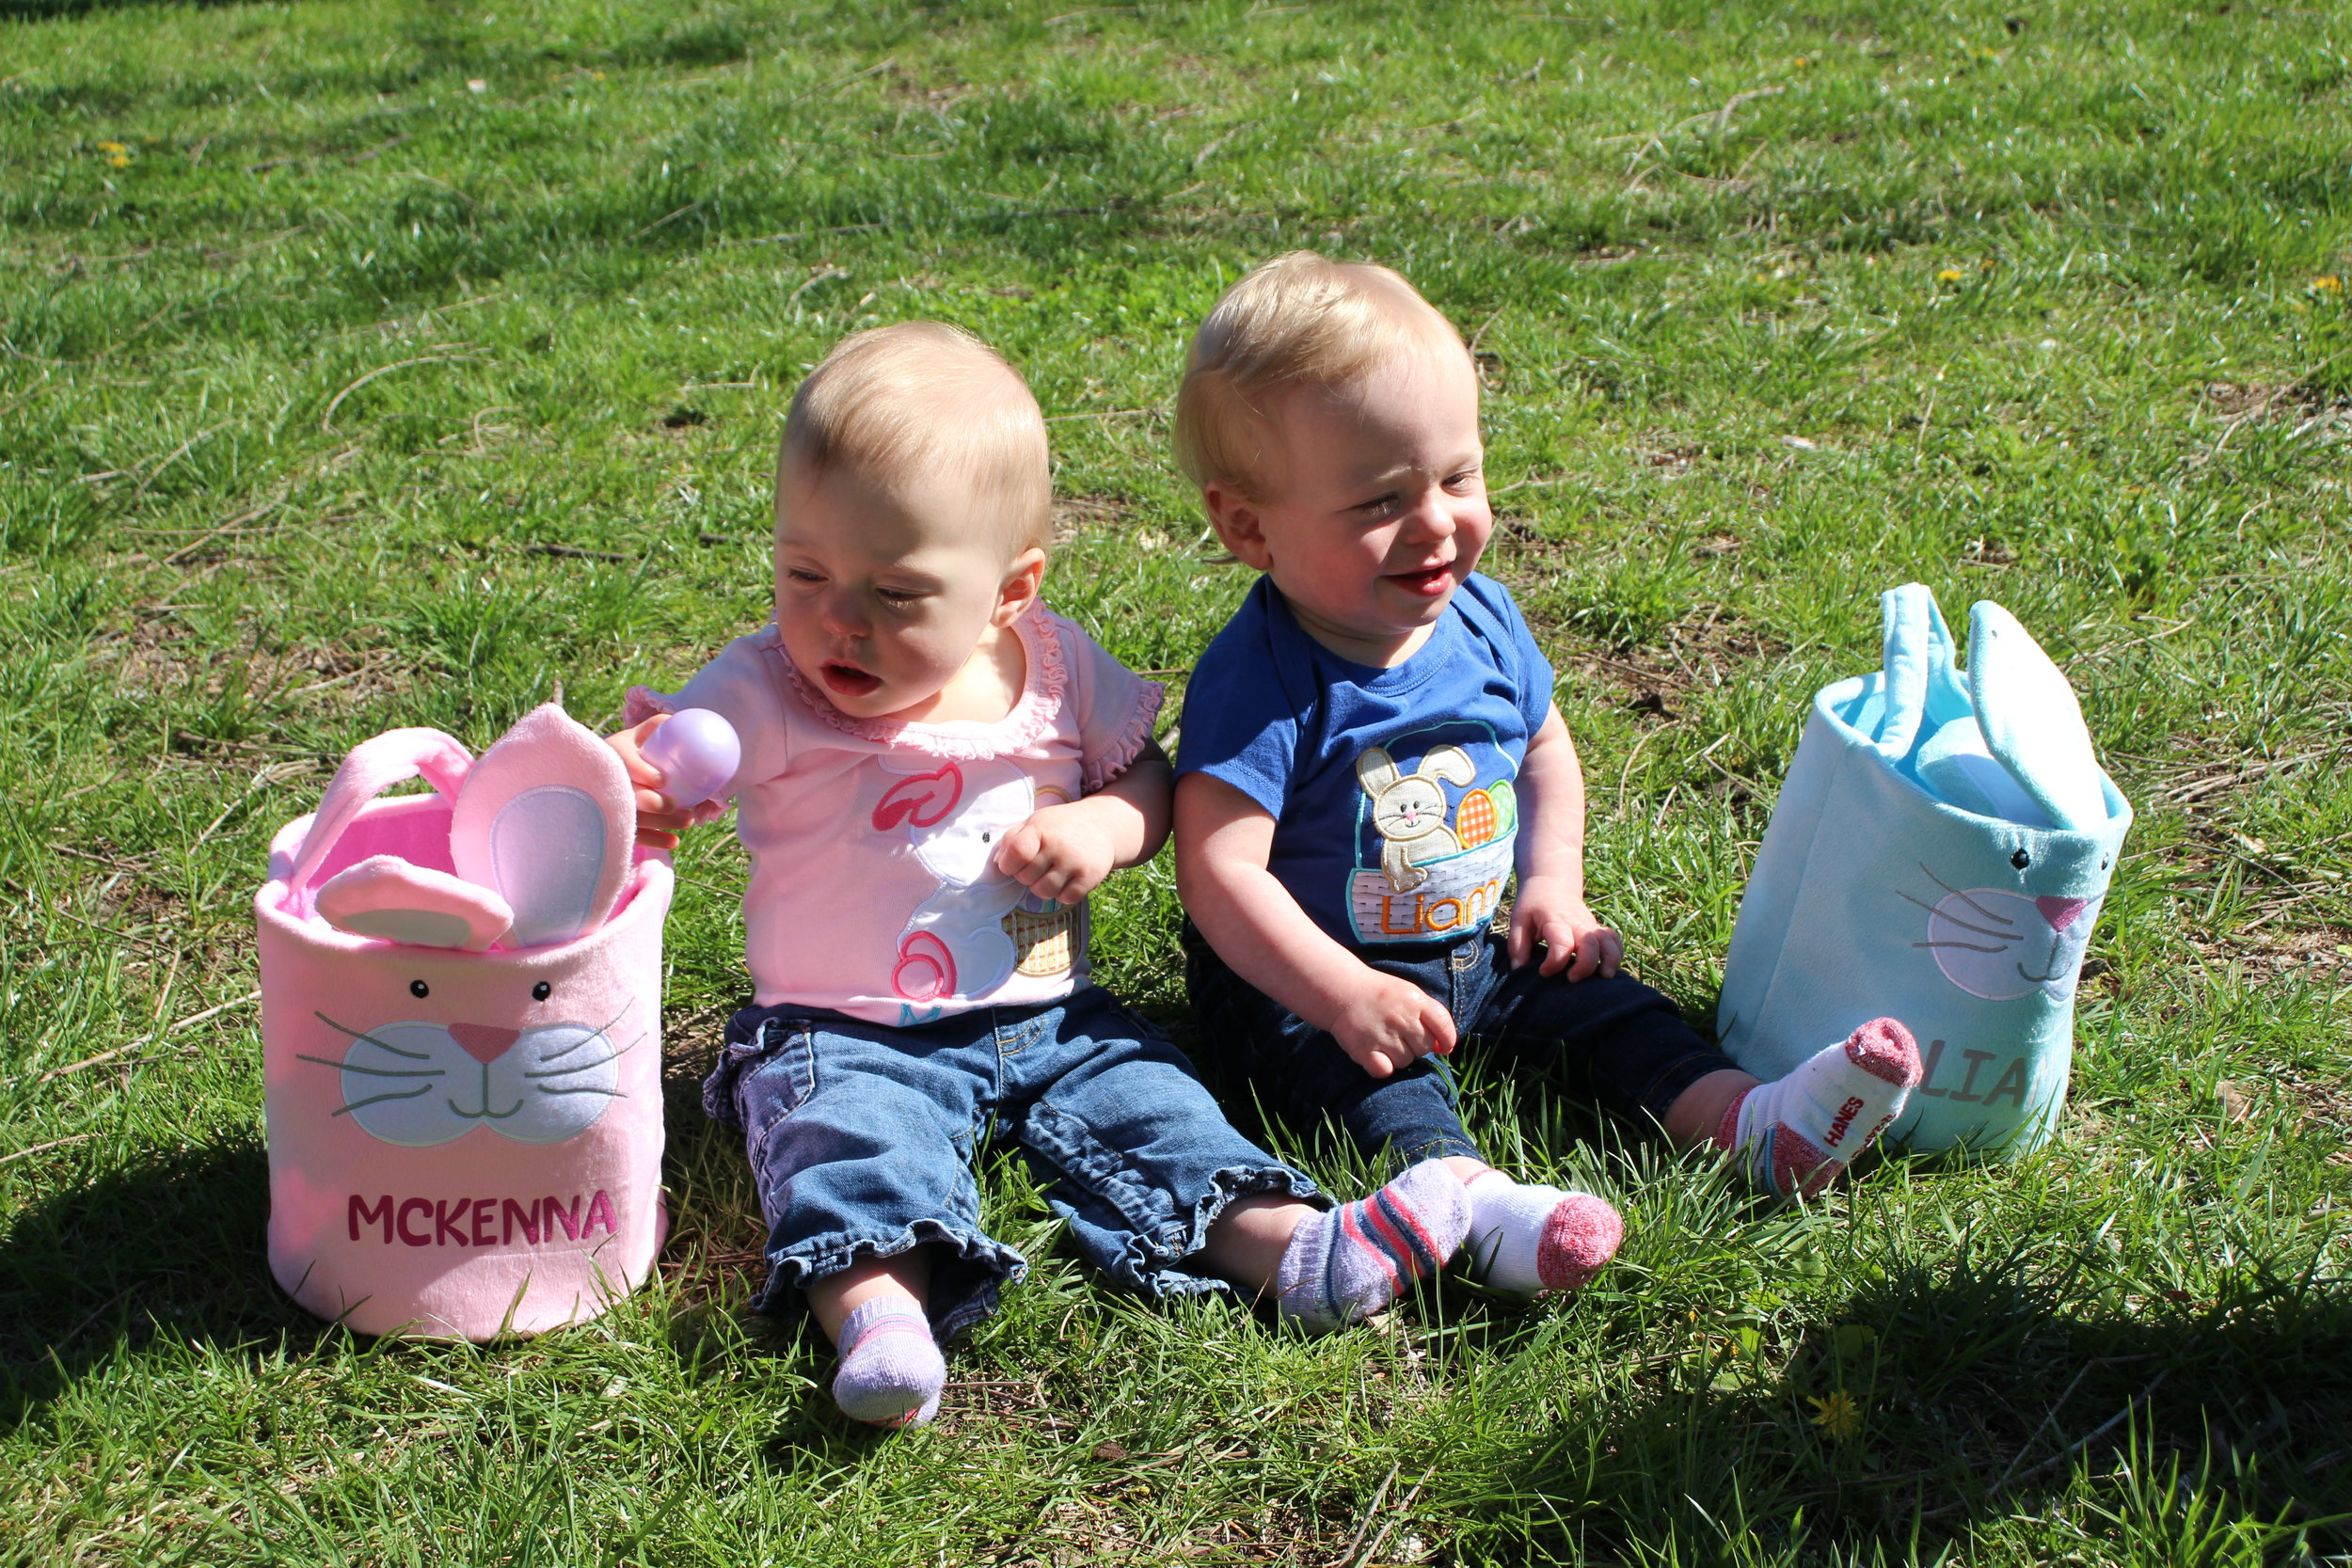 Twins McKenna and Liam Fisher, 1, of Riverside, enjoyed their first Easter egg hunt at the City of Riverside's event held Saturday, April 20 at Renner Brenner Park. Hundreds of children enjoyed the warm weather and sprinted to hunt eggs. Riverside mayor Kathy Rose acted as master of ceremonies and the event featured tours of a Riverside fire truck and visits with the Easter Bunny. The event was moved to Renner Brenner Park due to flooding and construction work at E.H. Young Riverfront Park. JEANETTE FAUBION/Citizen photos